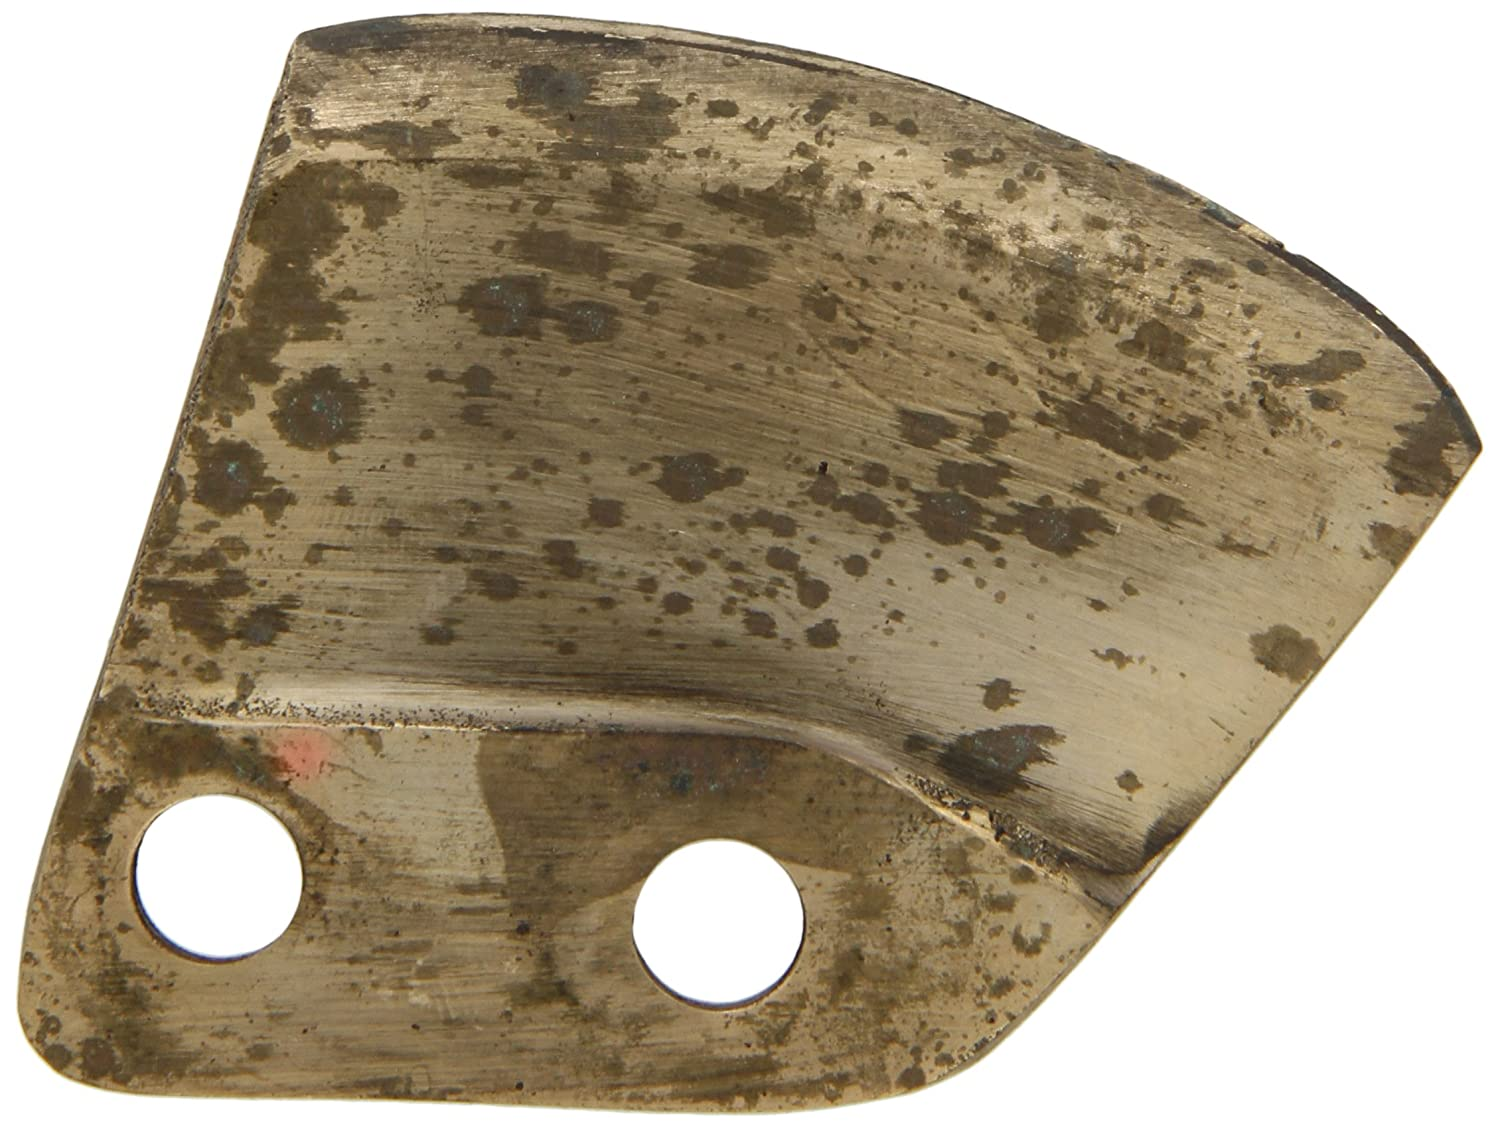 Wesco 272302 Replacement Blade, For 272301 Non-Sparking Deheader